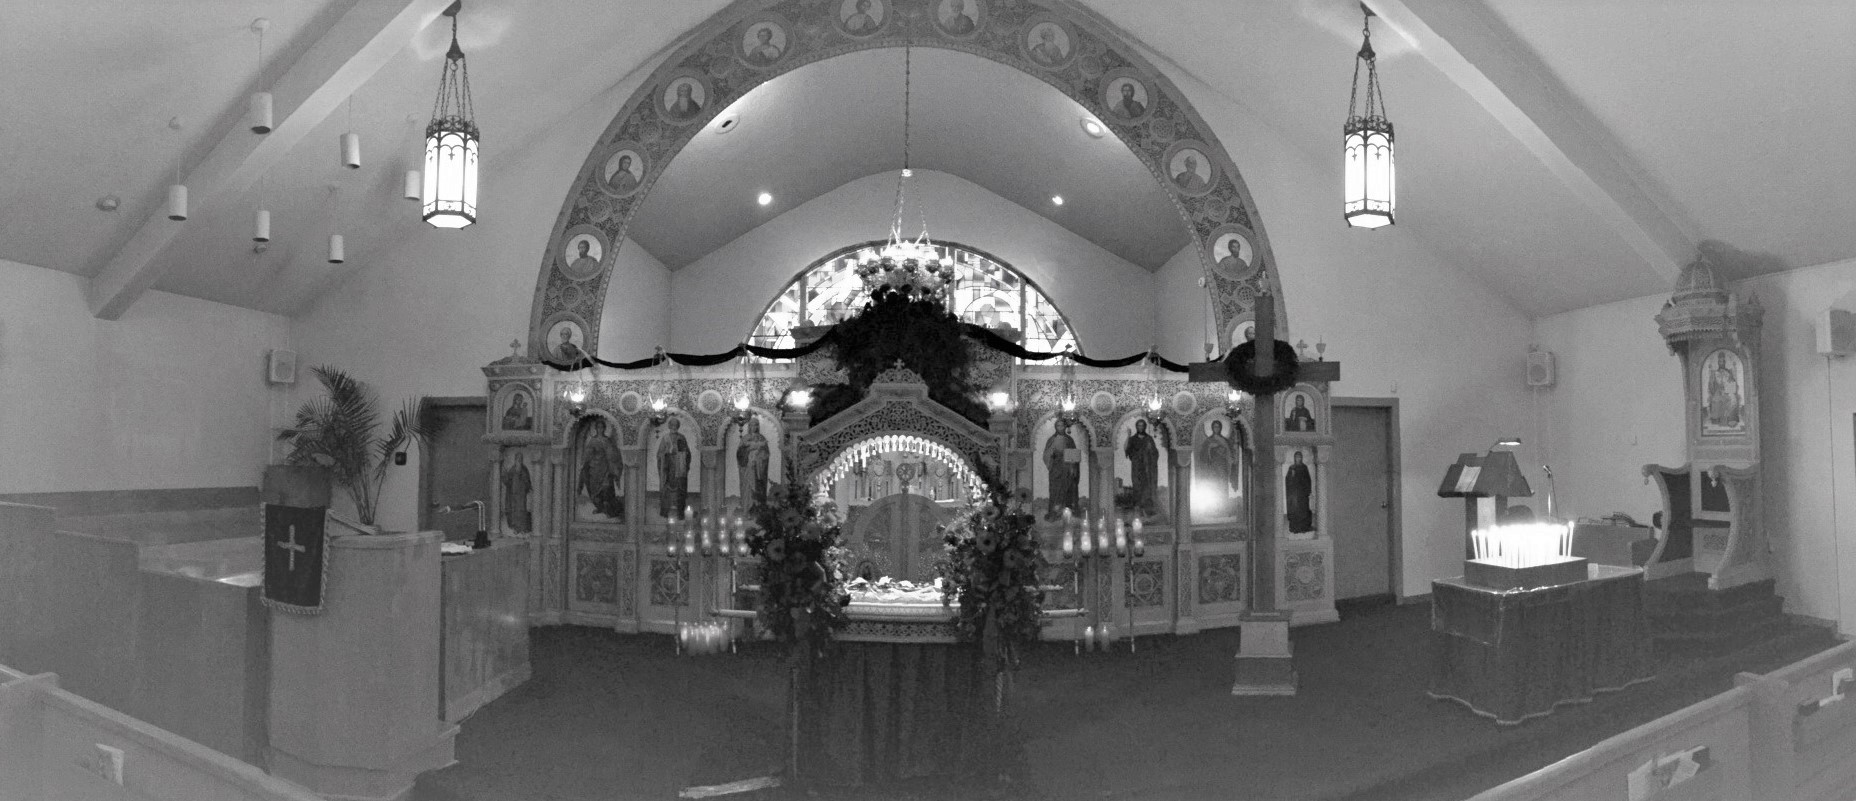 st. nicholas inside pic website bw